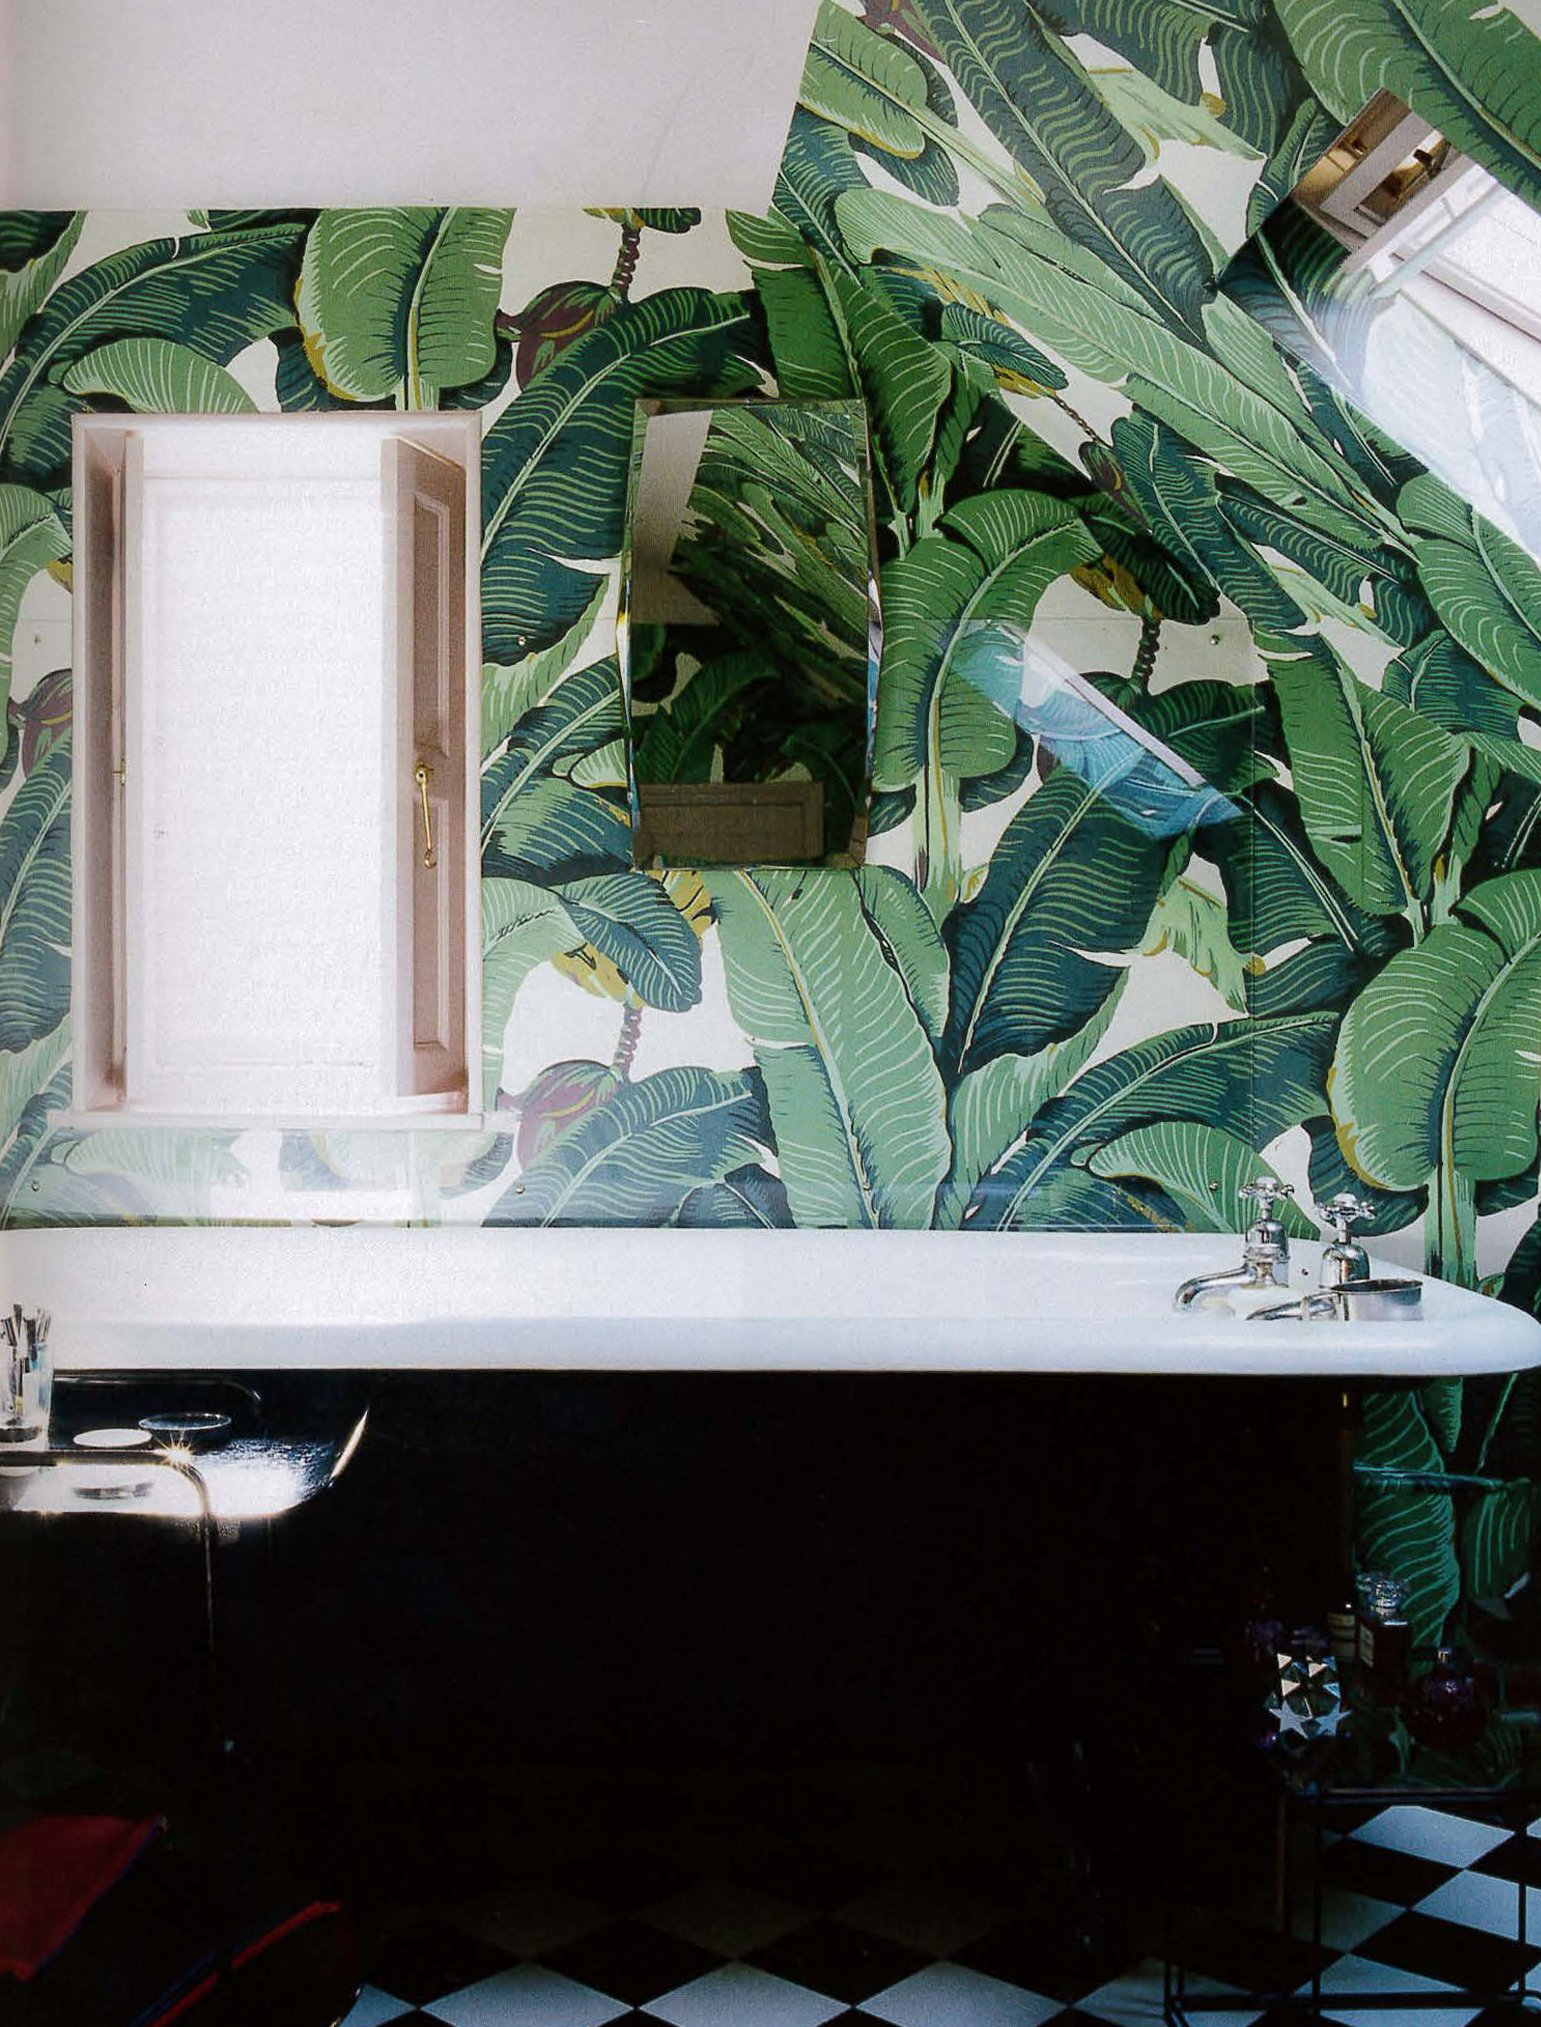 Leaf Banana Leaves Beverly Hills and Palm Wallpaper 1541x2027